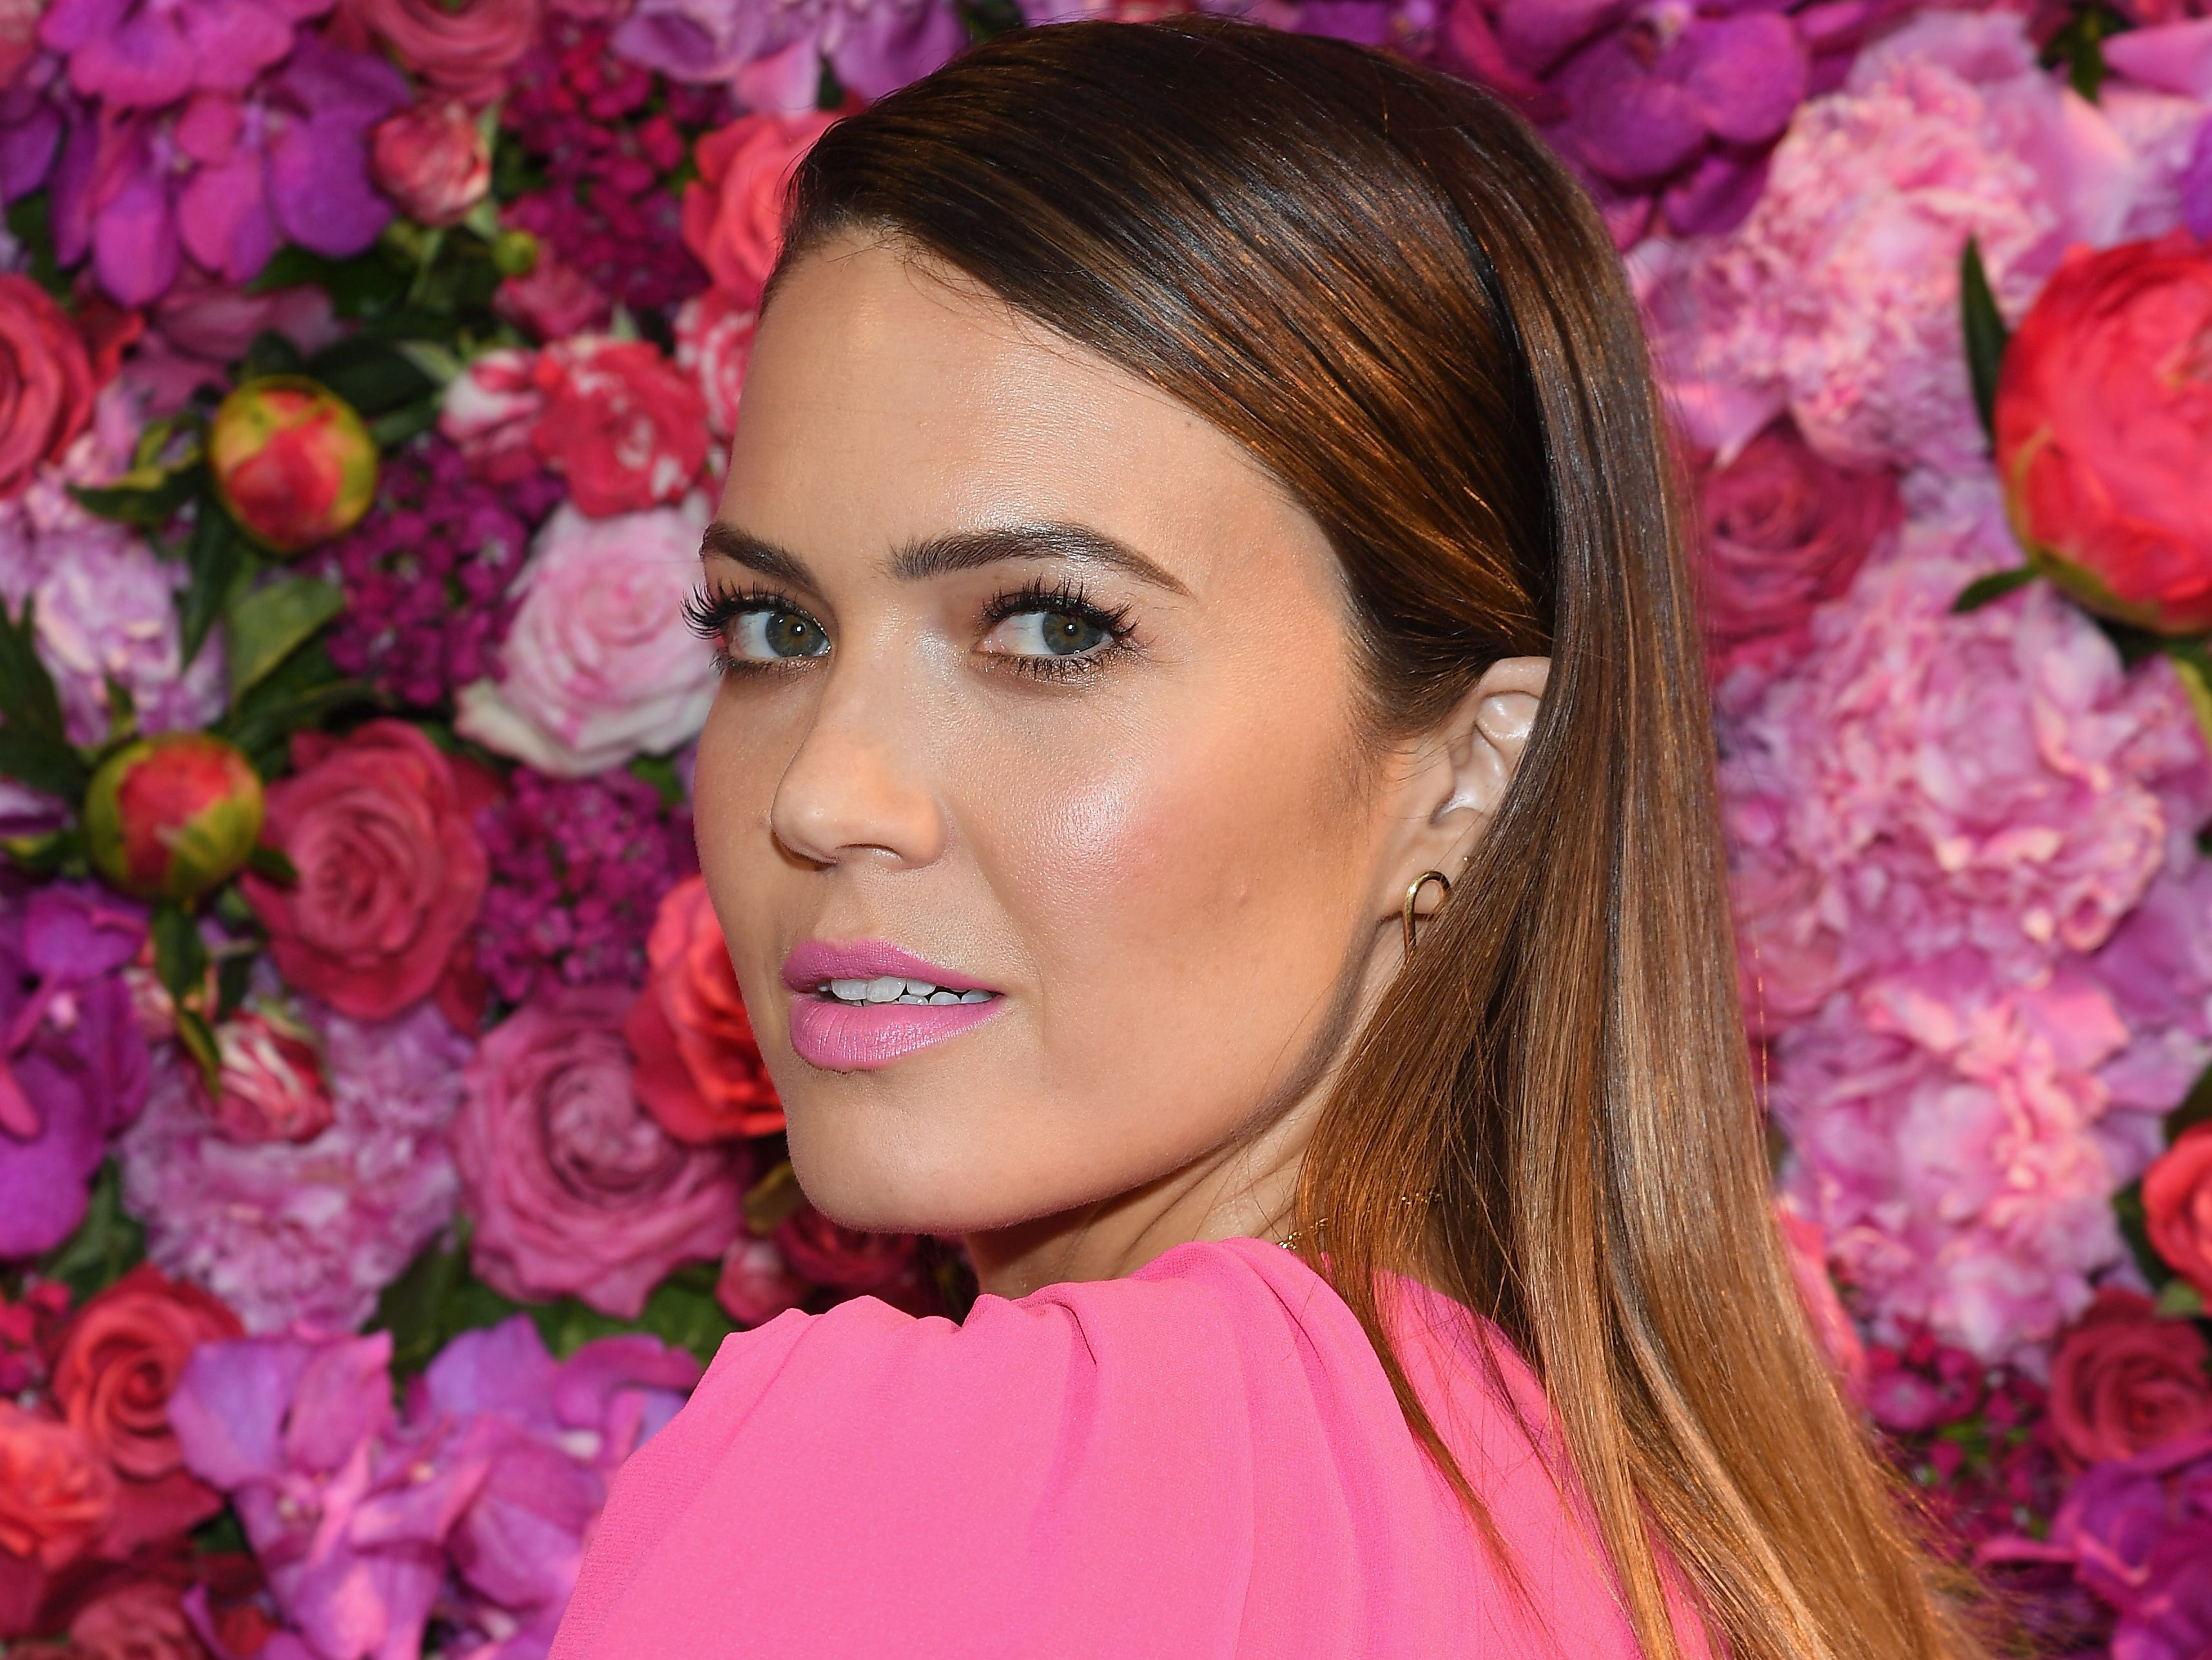 July 2: Mandy Moore attends the Schiaparelli Haute Couture Fall Winter 2018/2019 show during Paris Fashion Week.